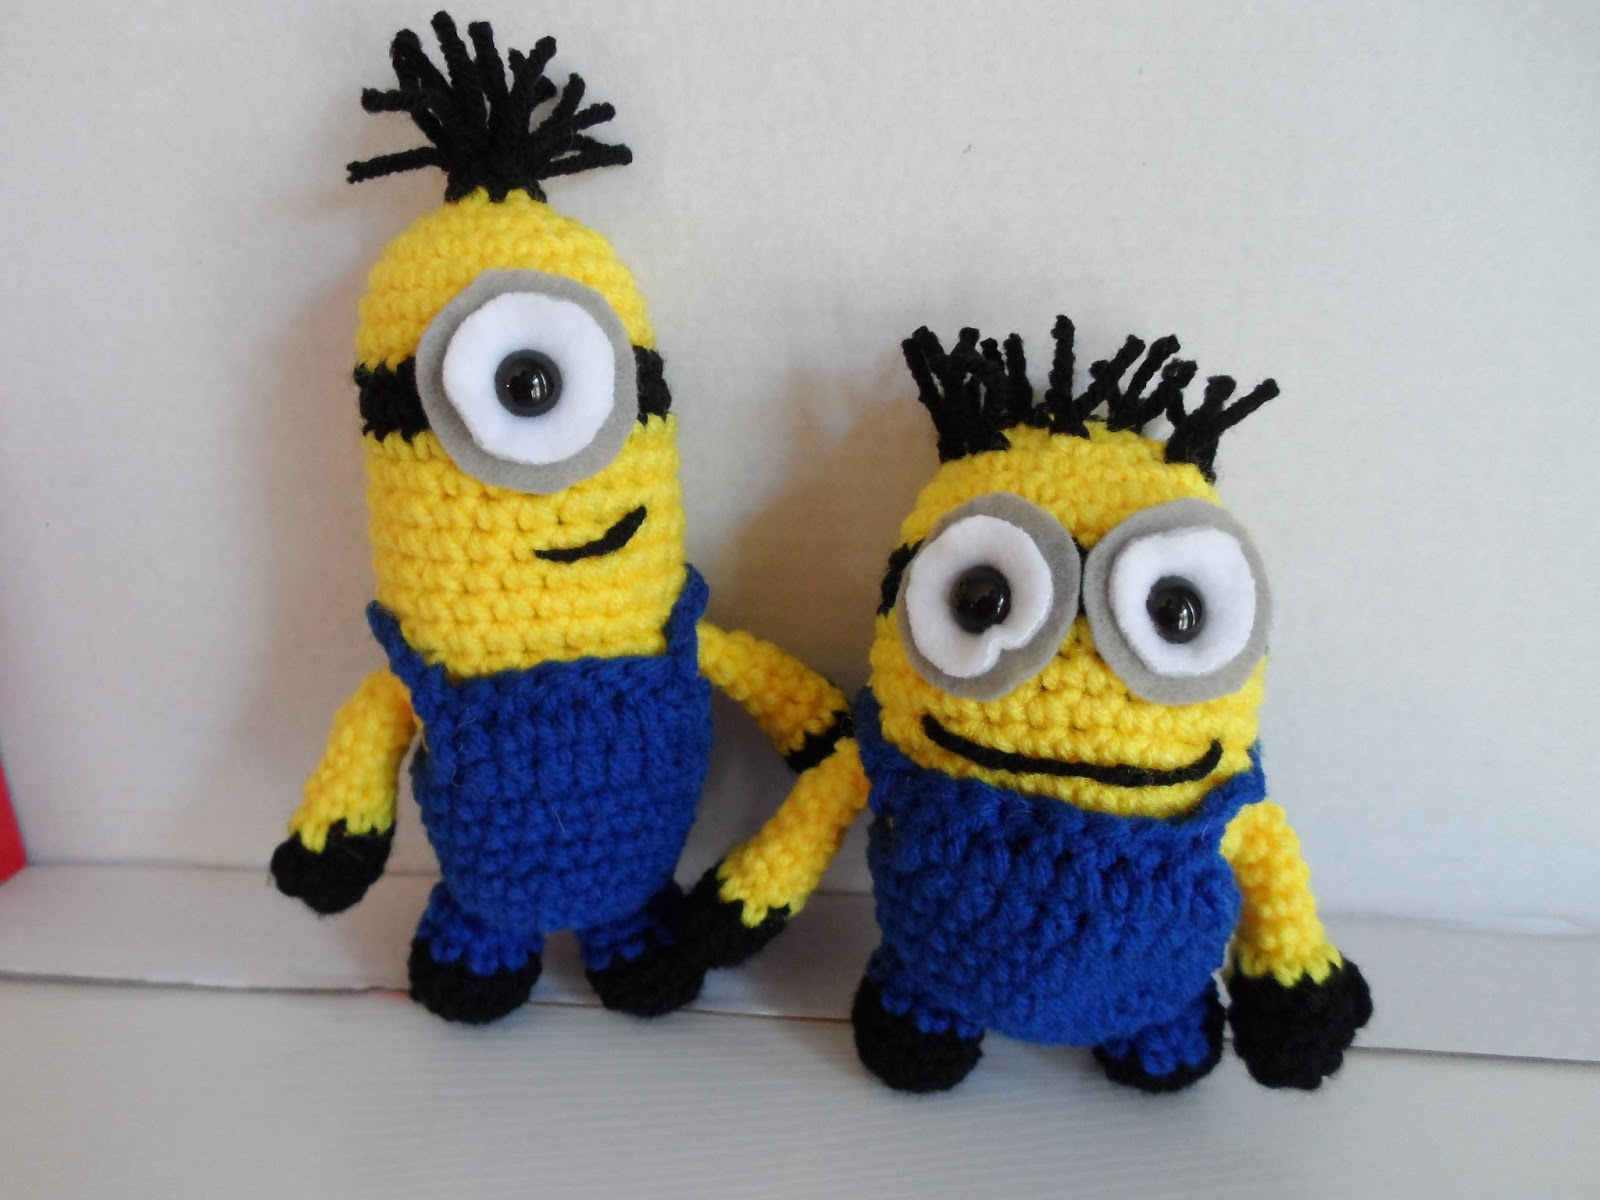 Crochet Pattern Minion : Kristens Crochet: Minions Revisited